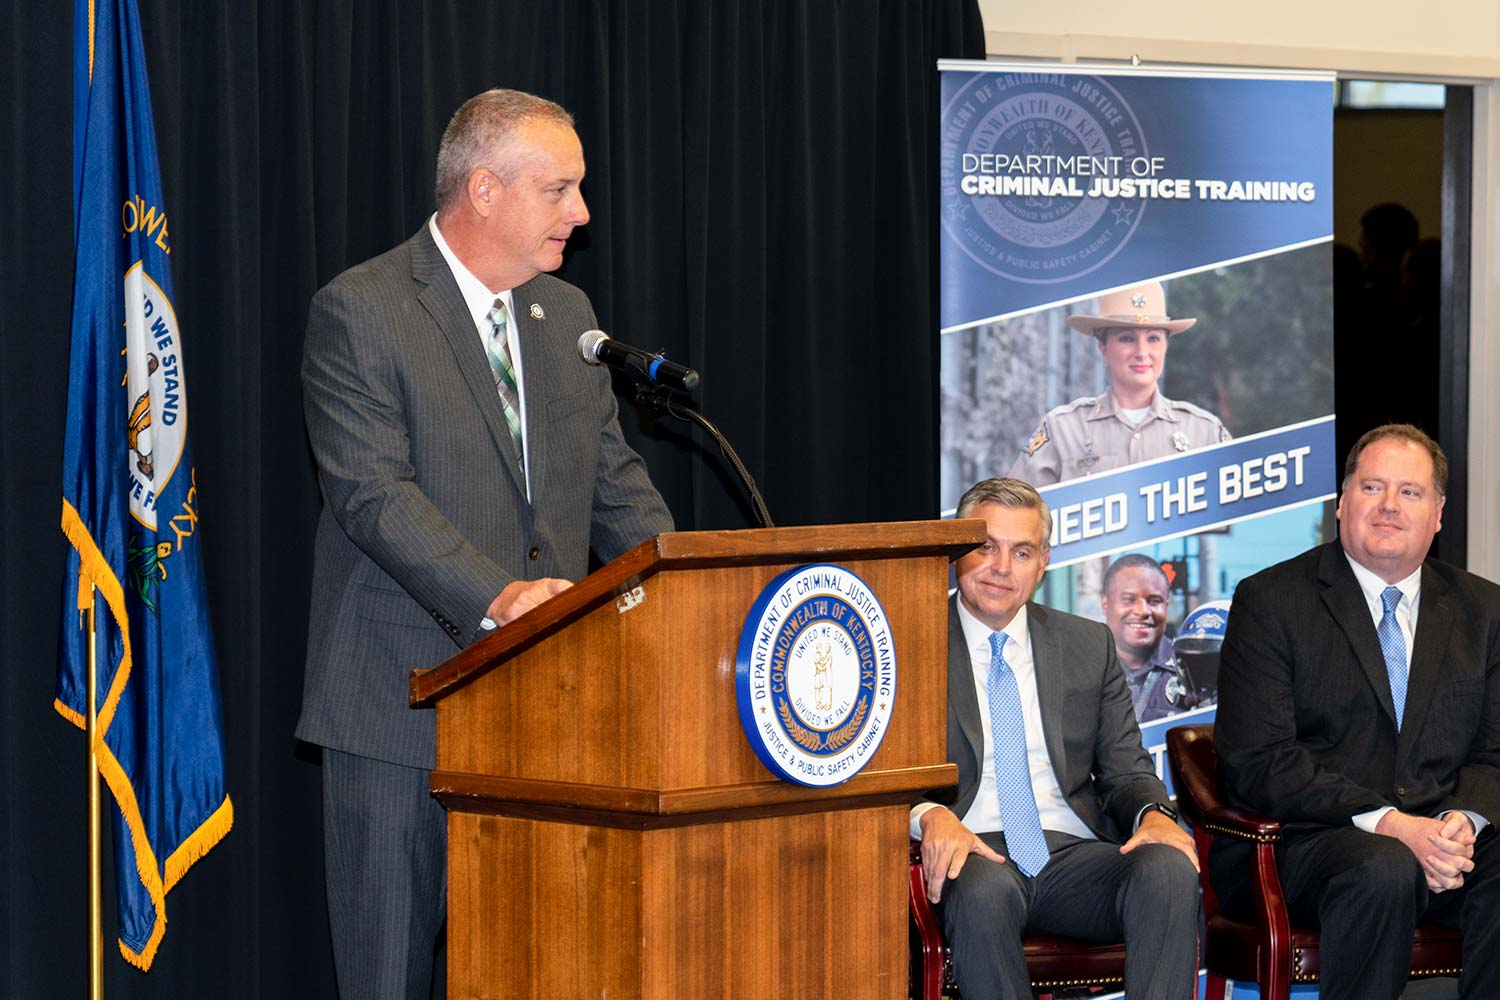 Department of Criminal Justice Training Commissioner Alex Payne speaks to attendees. (Photo by Jim Robertson)